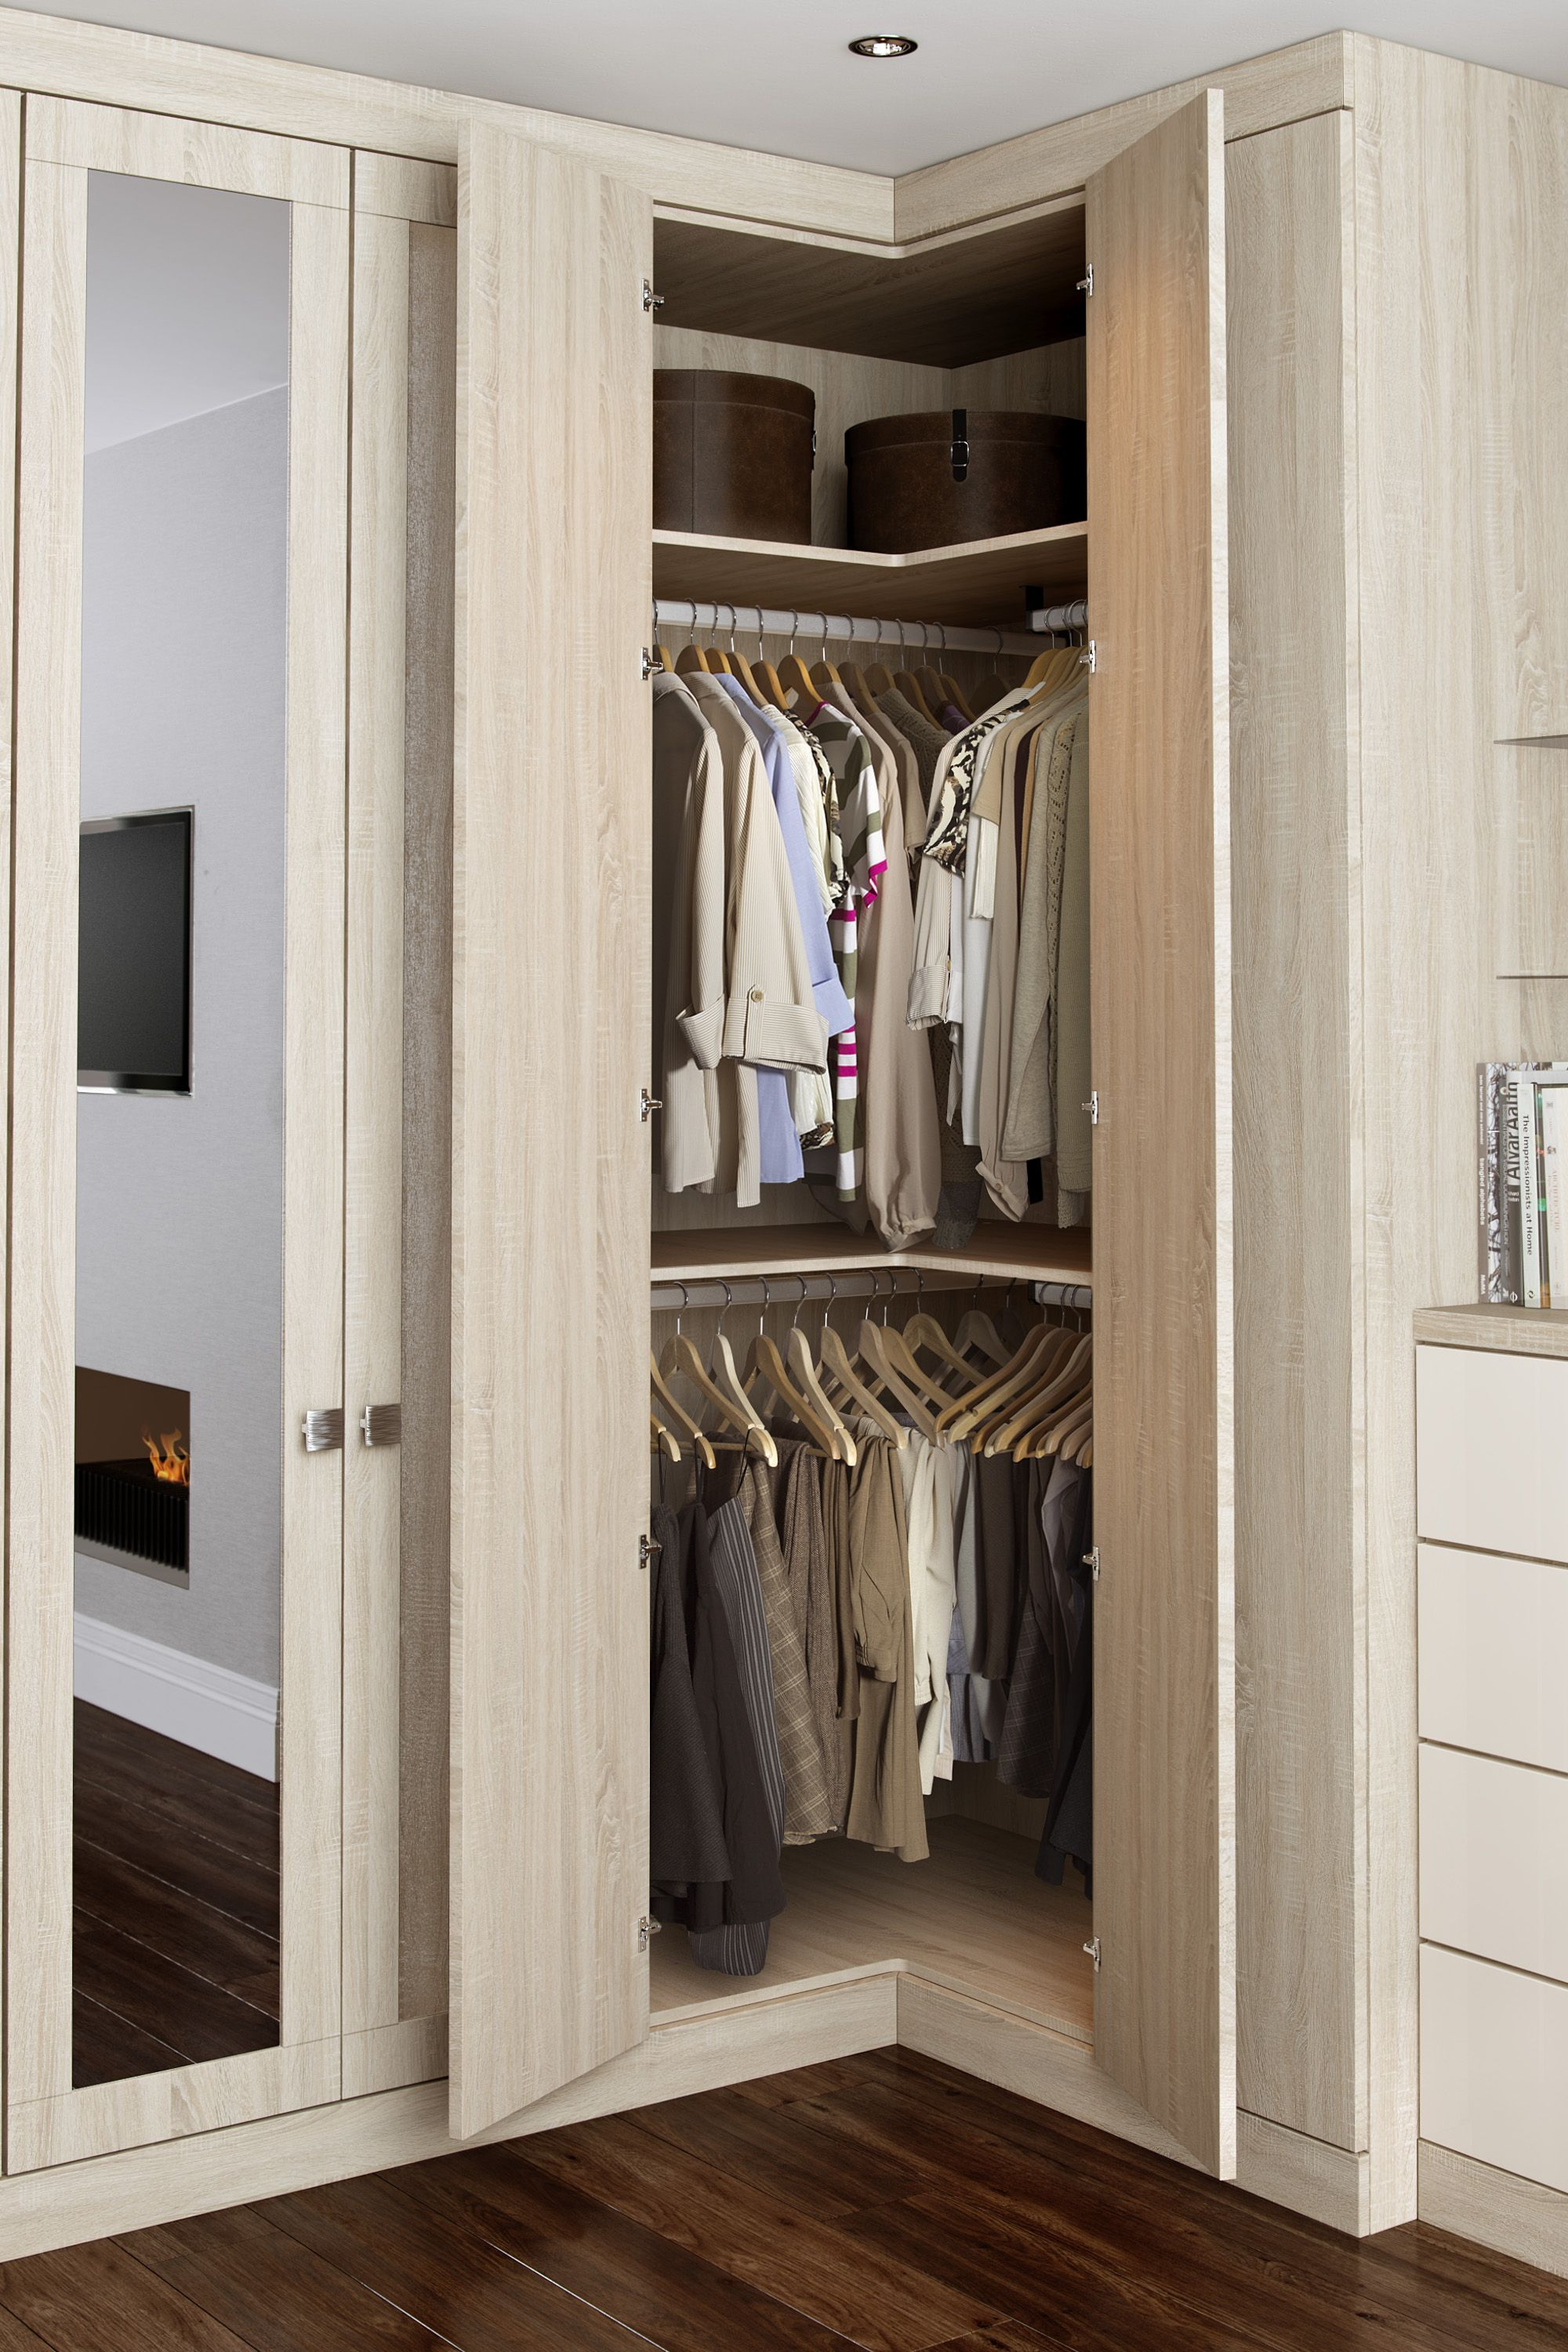 l-shape wardrobe | built-in wardrobe | pinterest | wardrobes